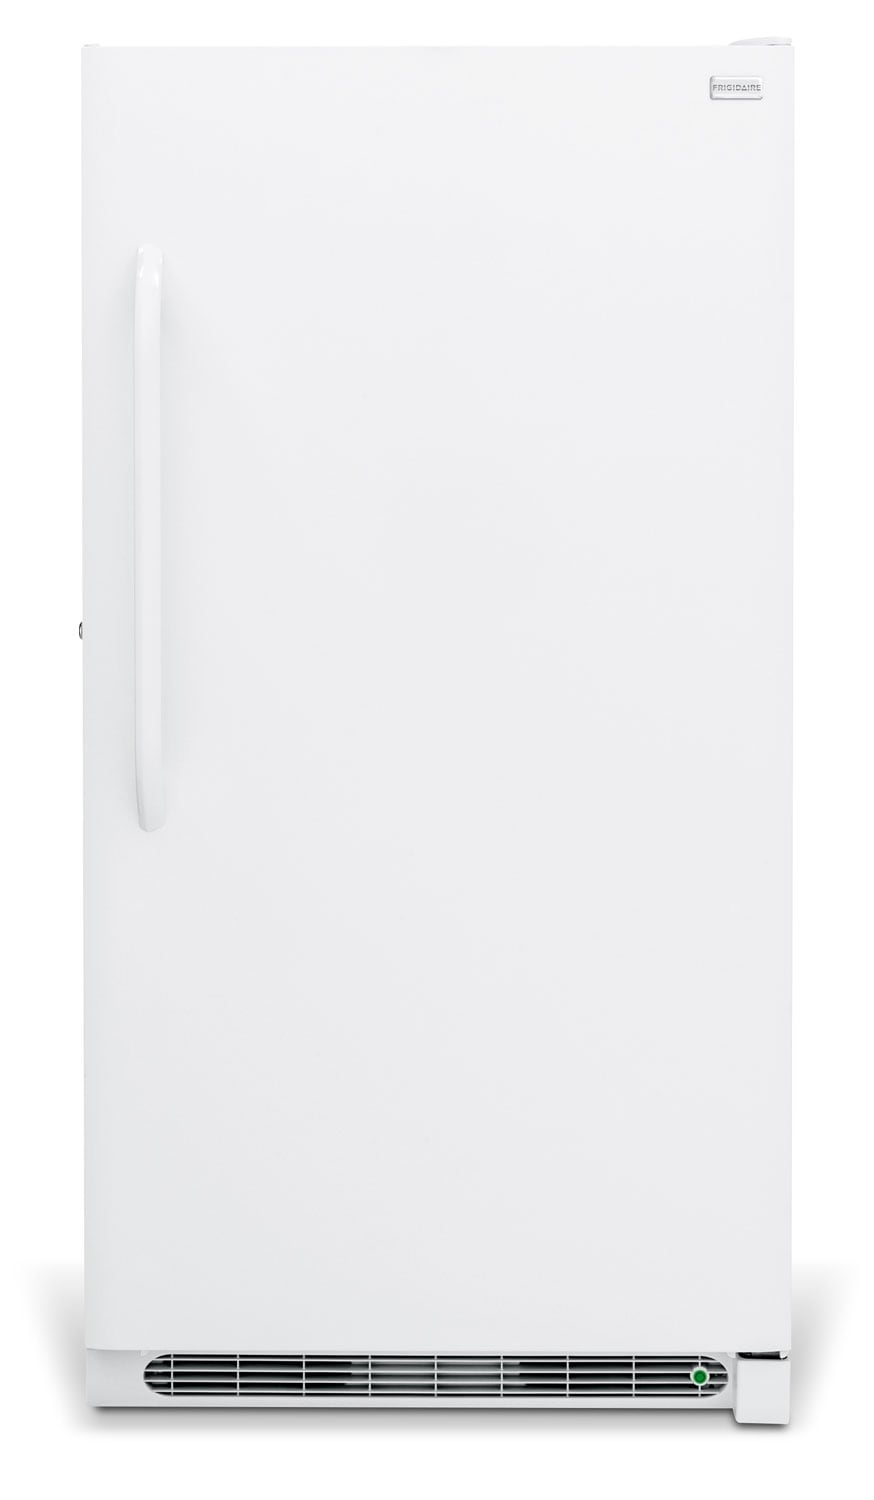 Refrigerators and Freezers - Frigidaire Upright Freezer (16.6 Cu. Ft.) FFFH17F2QW